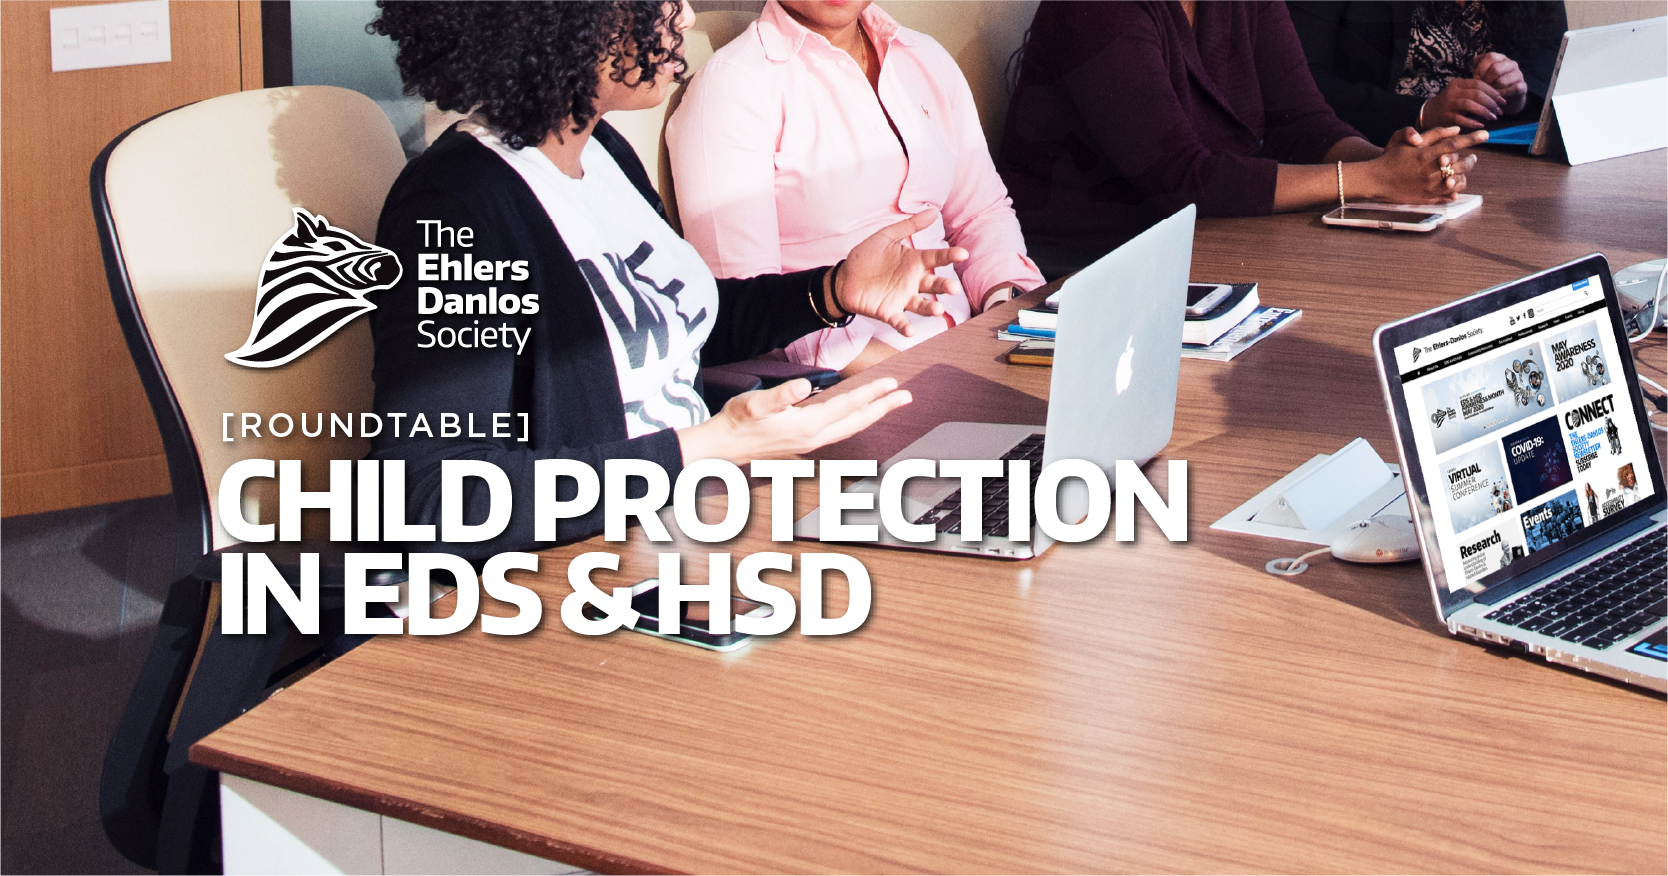 Child Protection in EDS and HSD Roundtable